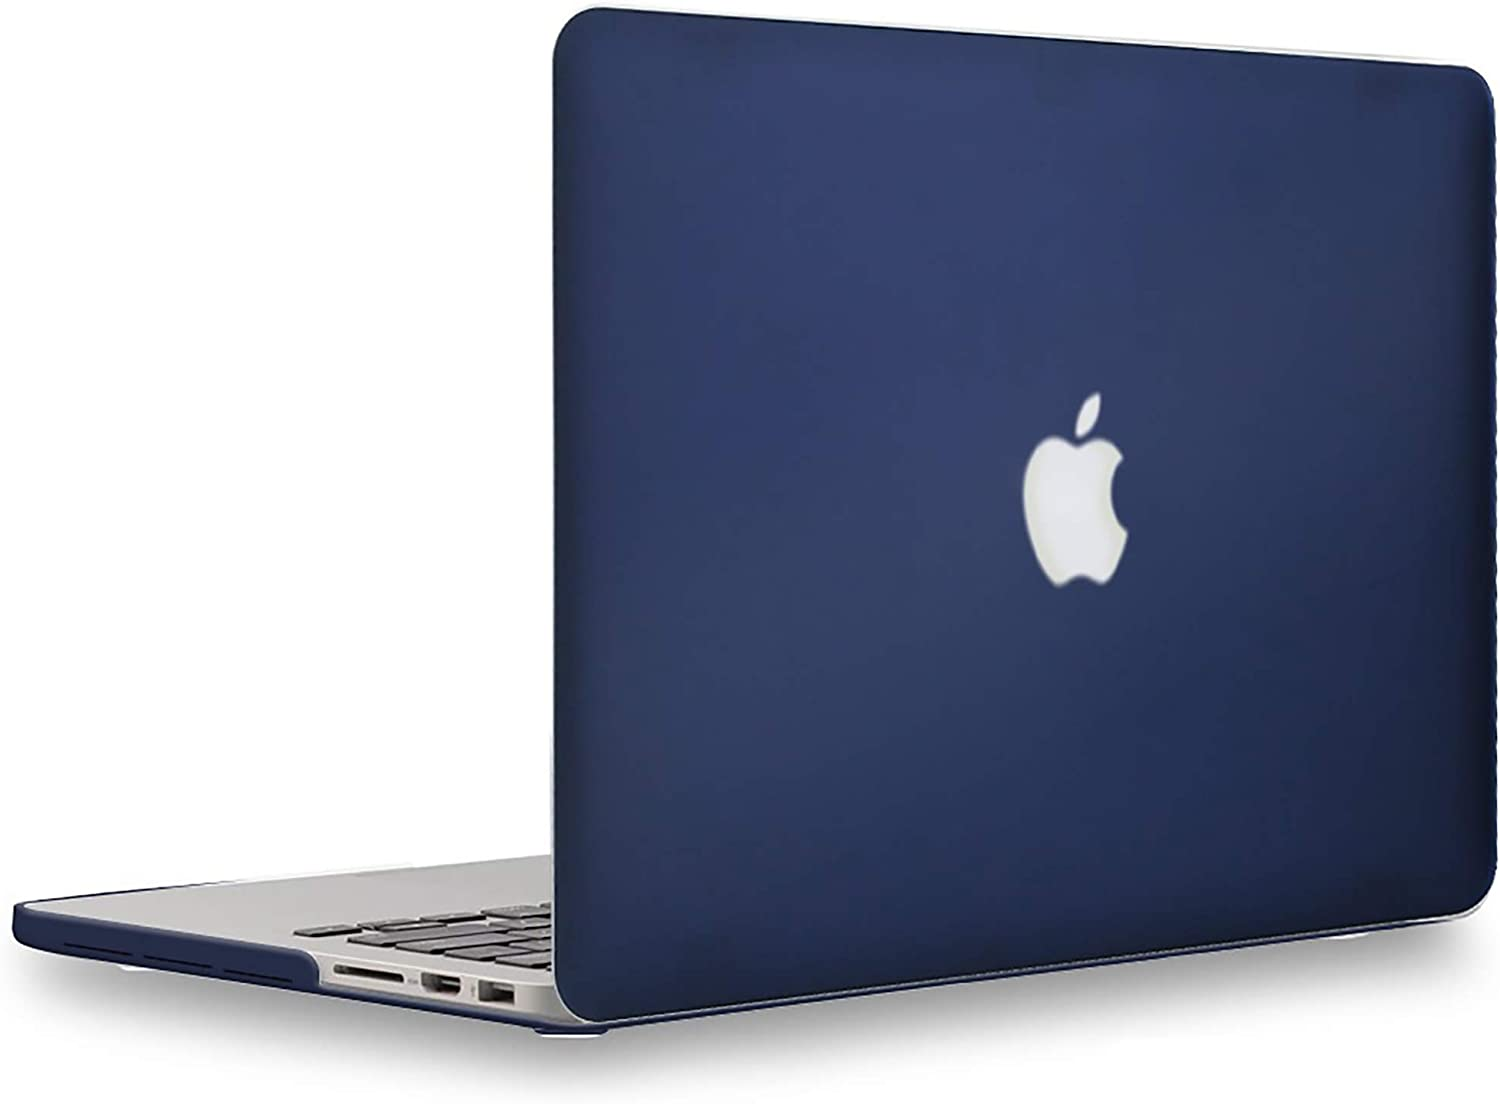 UESWILL Matte Hard Case for MacBook Pro (Retina, 15 inch, Mid 2012/2013/2014/Mid 2015), Model A1398, NO CD-ROM, NO Touch Bar , Navy Blue